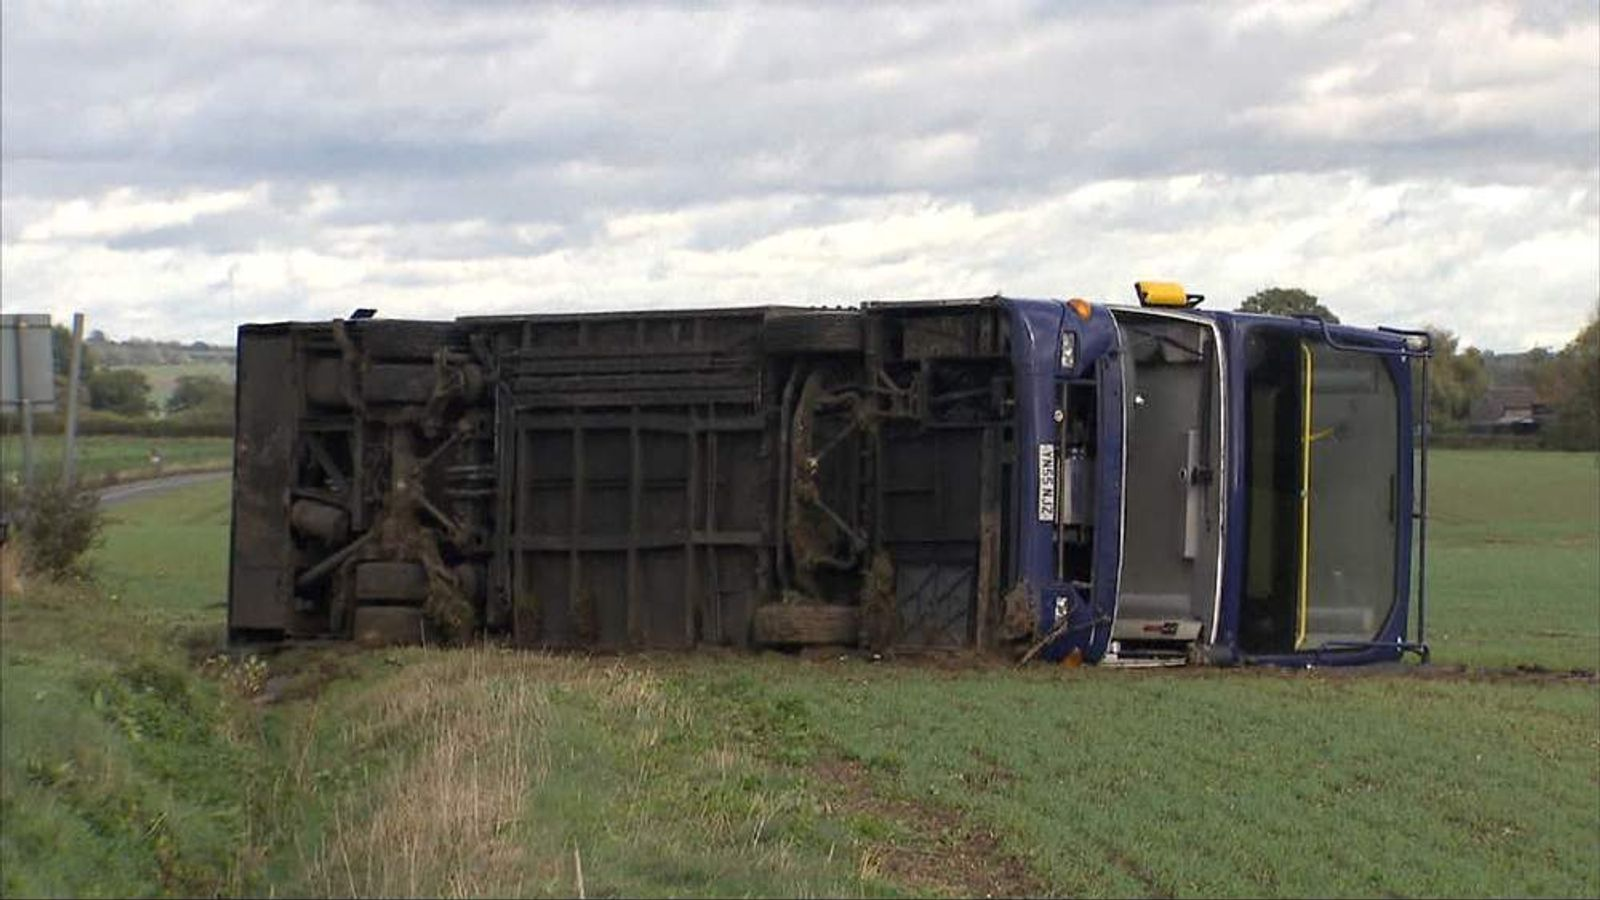 Bus overturned by storm in Suffolk